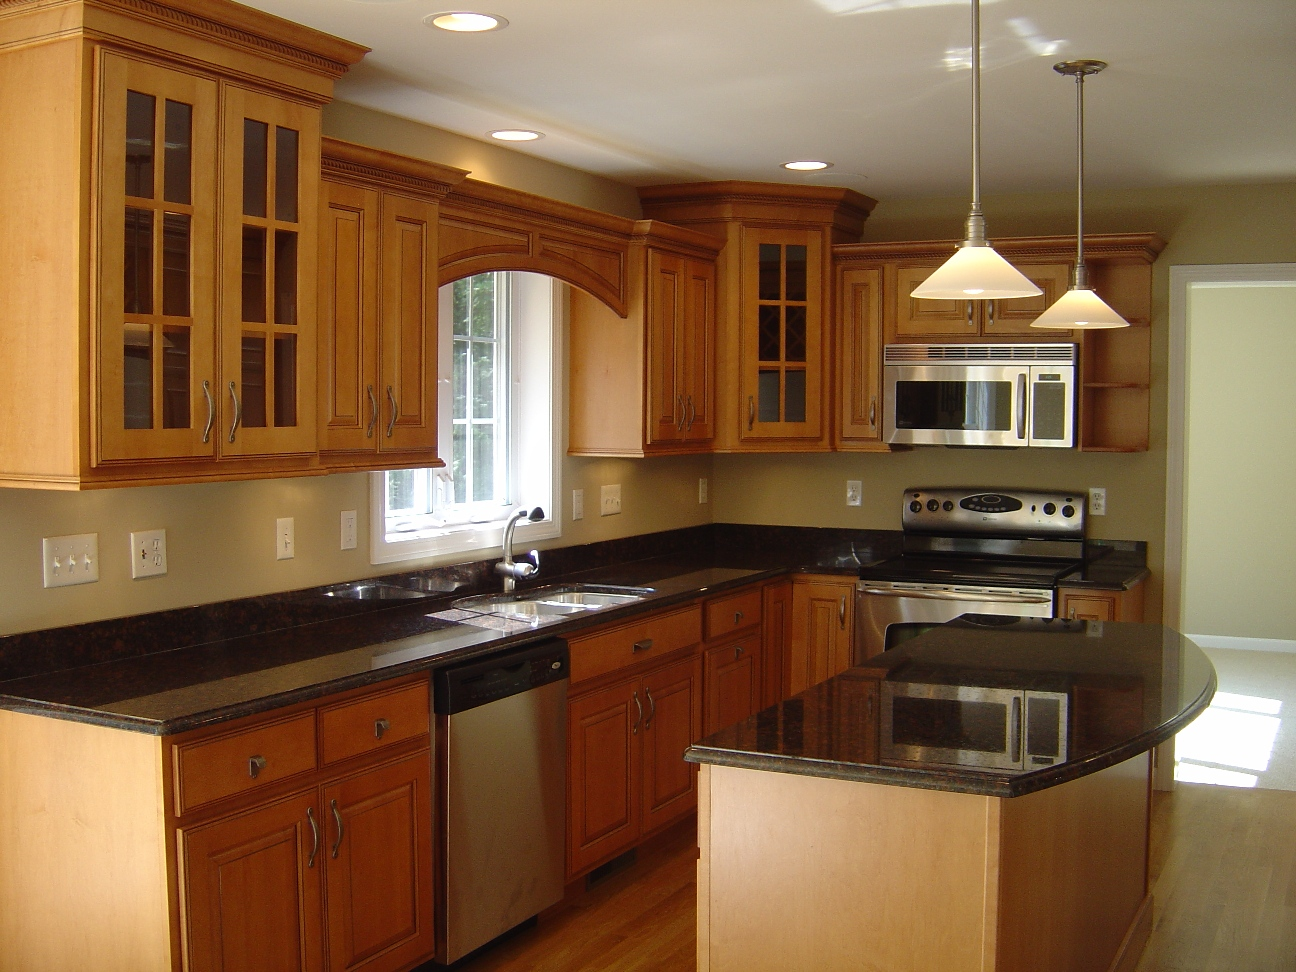 35 Kitchen Design For Your Home - The WoW Style on Kitchen Ideas  id=31276